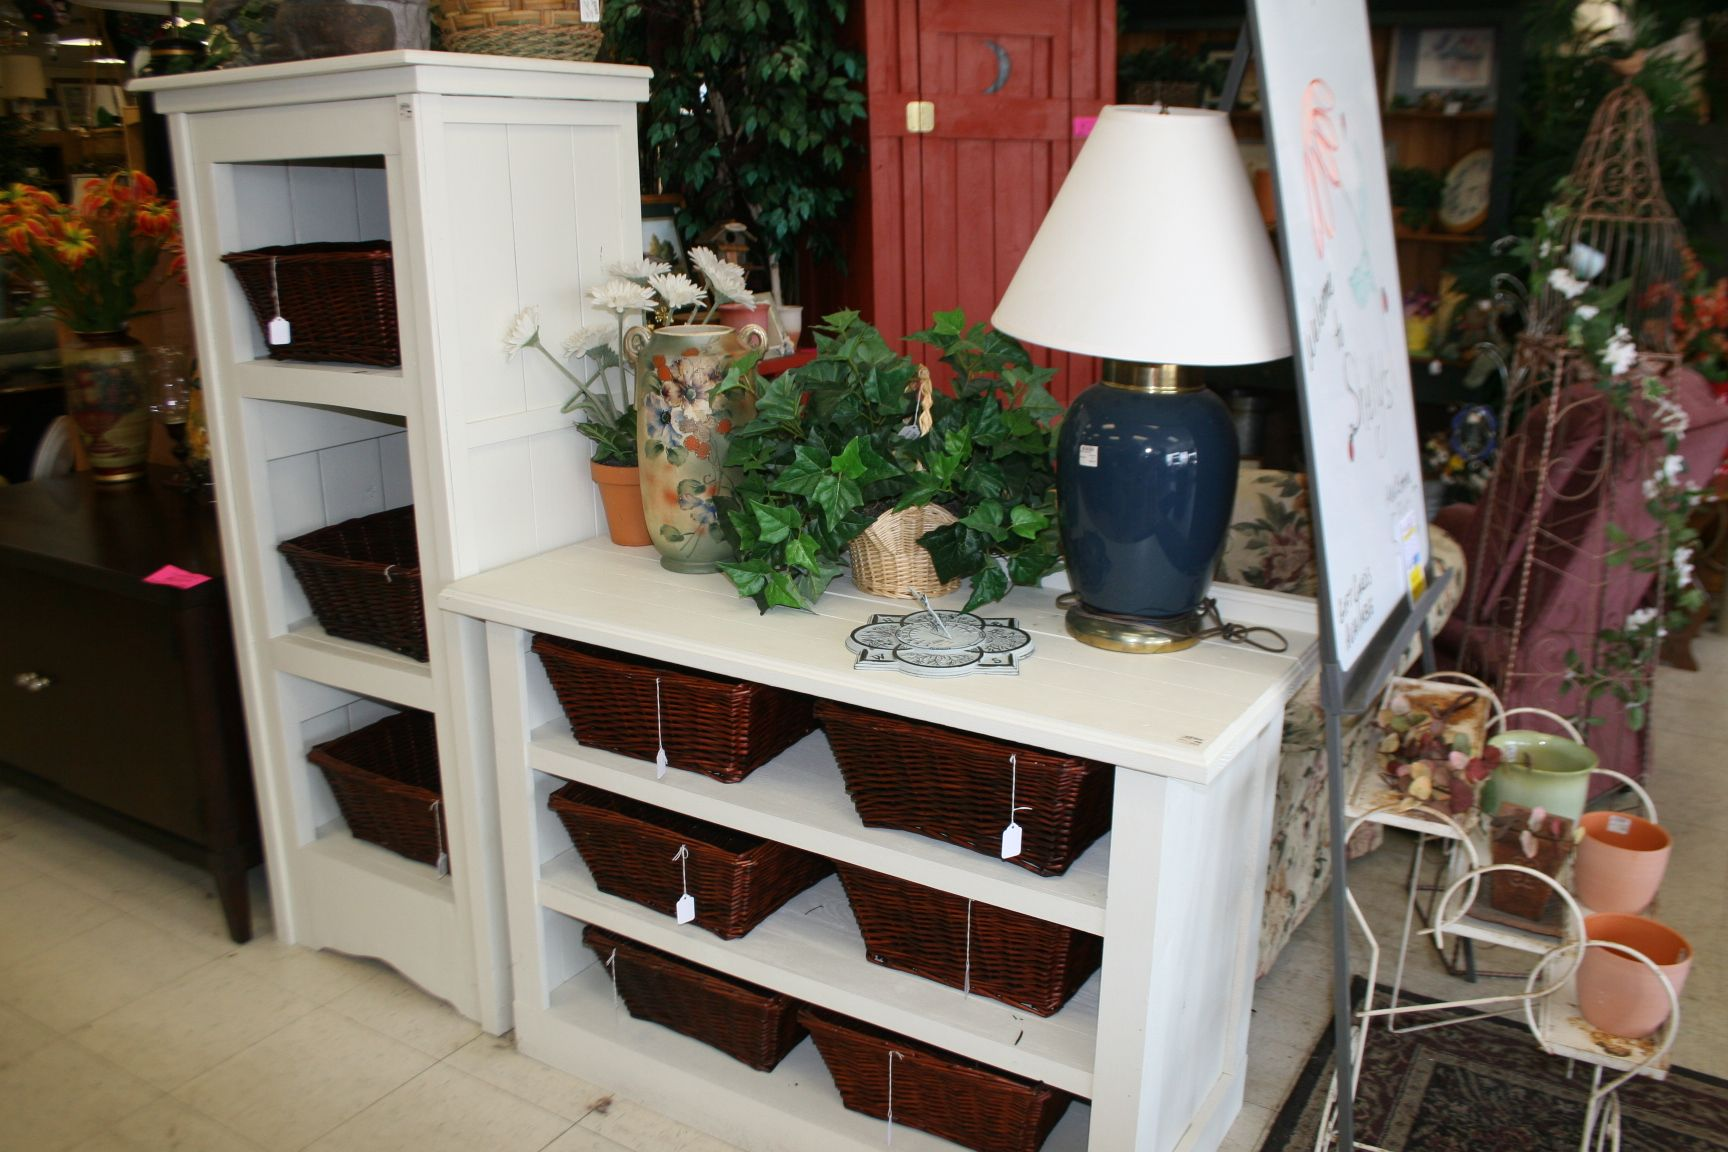 Gary made these shelves! I am thinking maybe he needs to make me some too! I love how you can use the baskets to keep things organized!